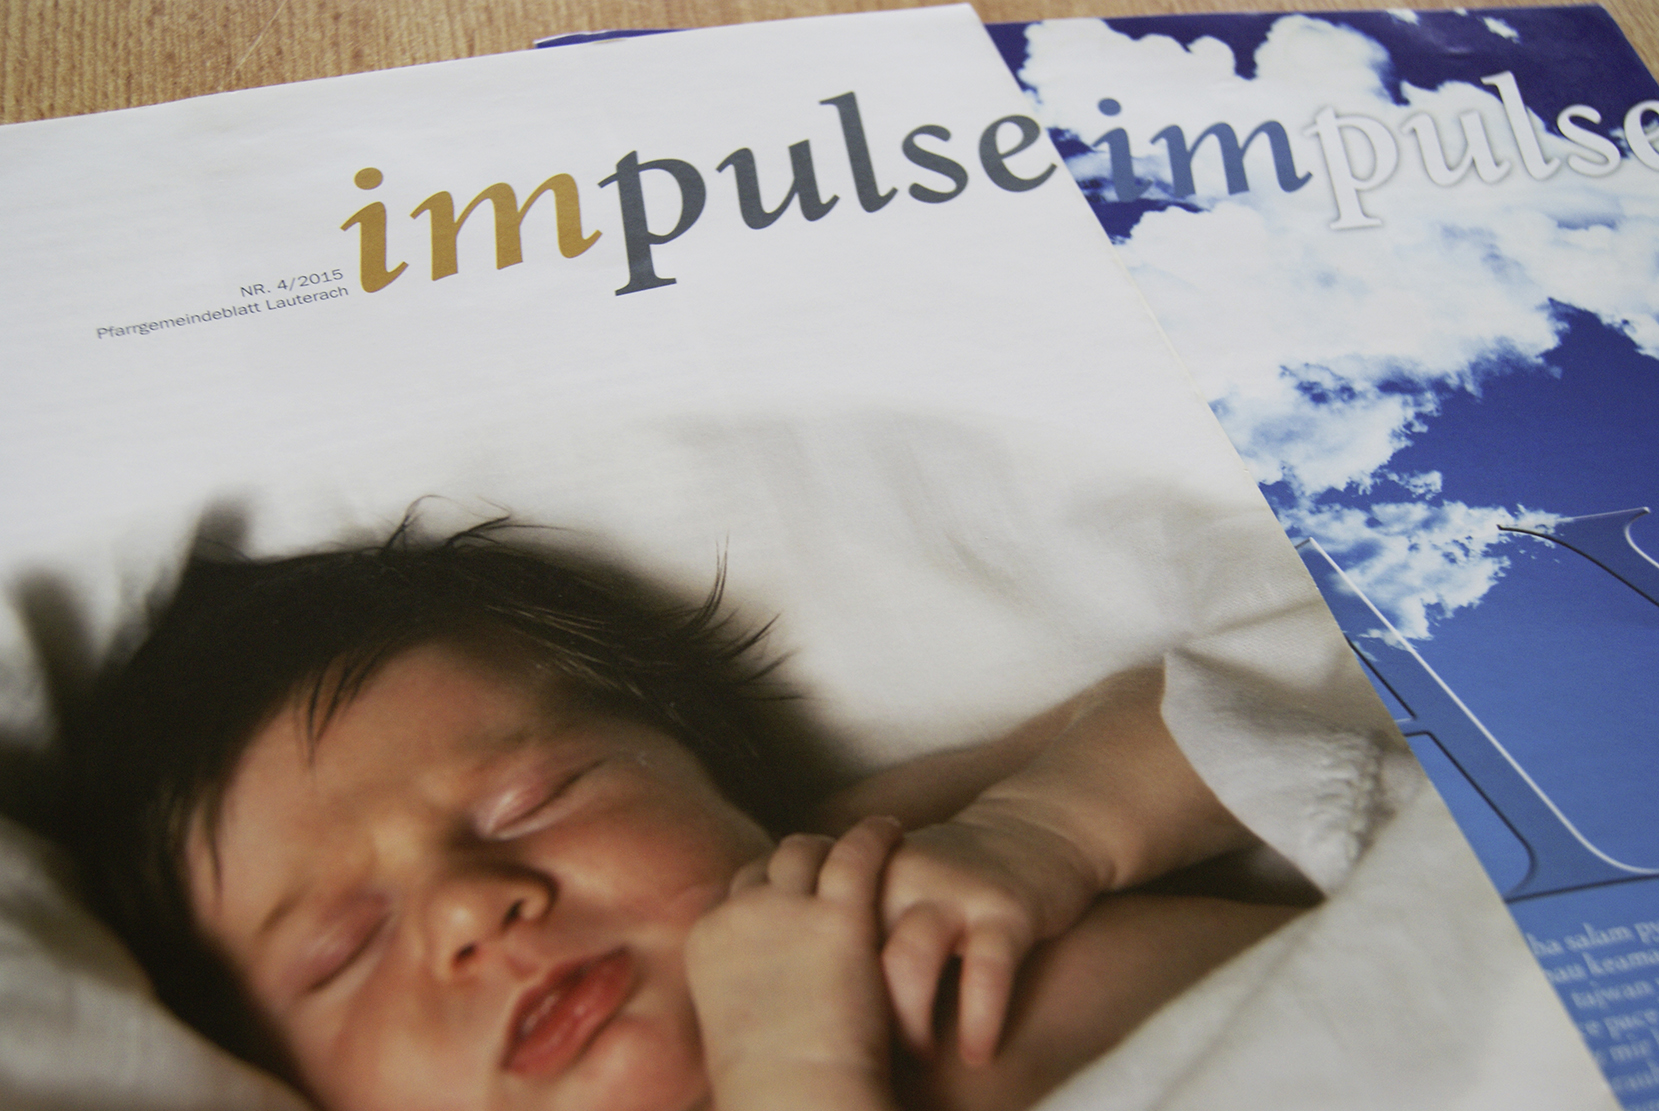 Impulse Lauterach, addesign, let love guide your way, friede auf erden, Kirchenblatt Vorarlberg, Pfarrzeitung Vorarlberg, vorarlbgerger Kirchenblatt, Lauteracher Kirchenblatt, Lauterach